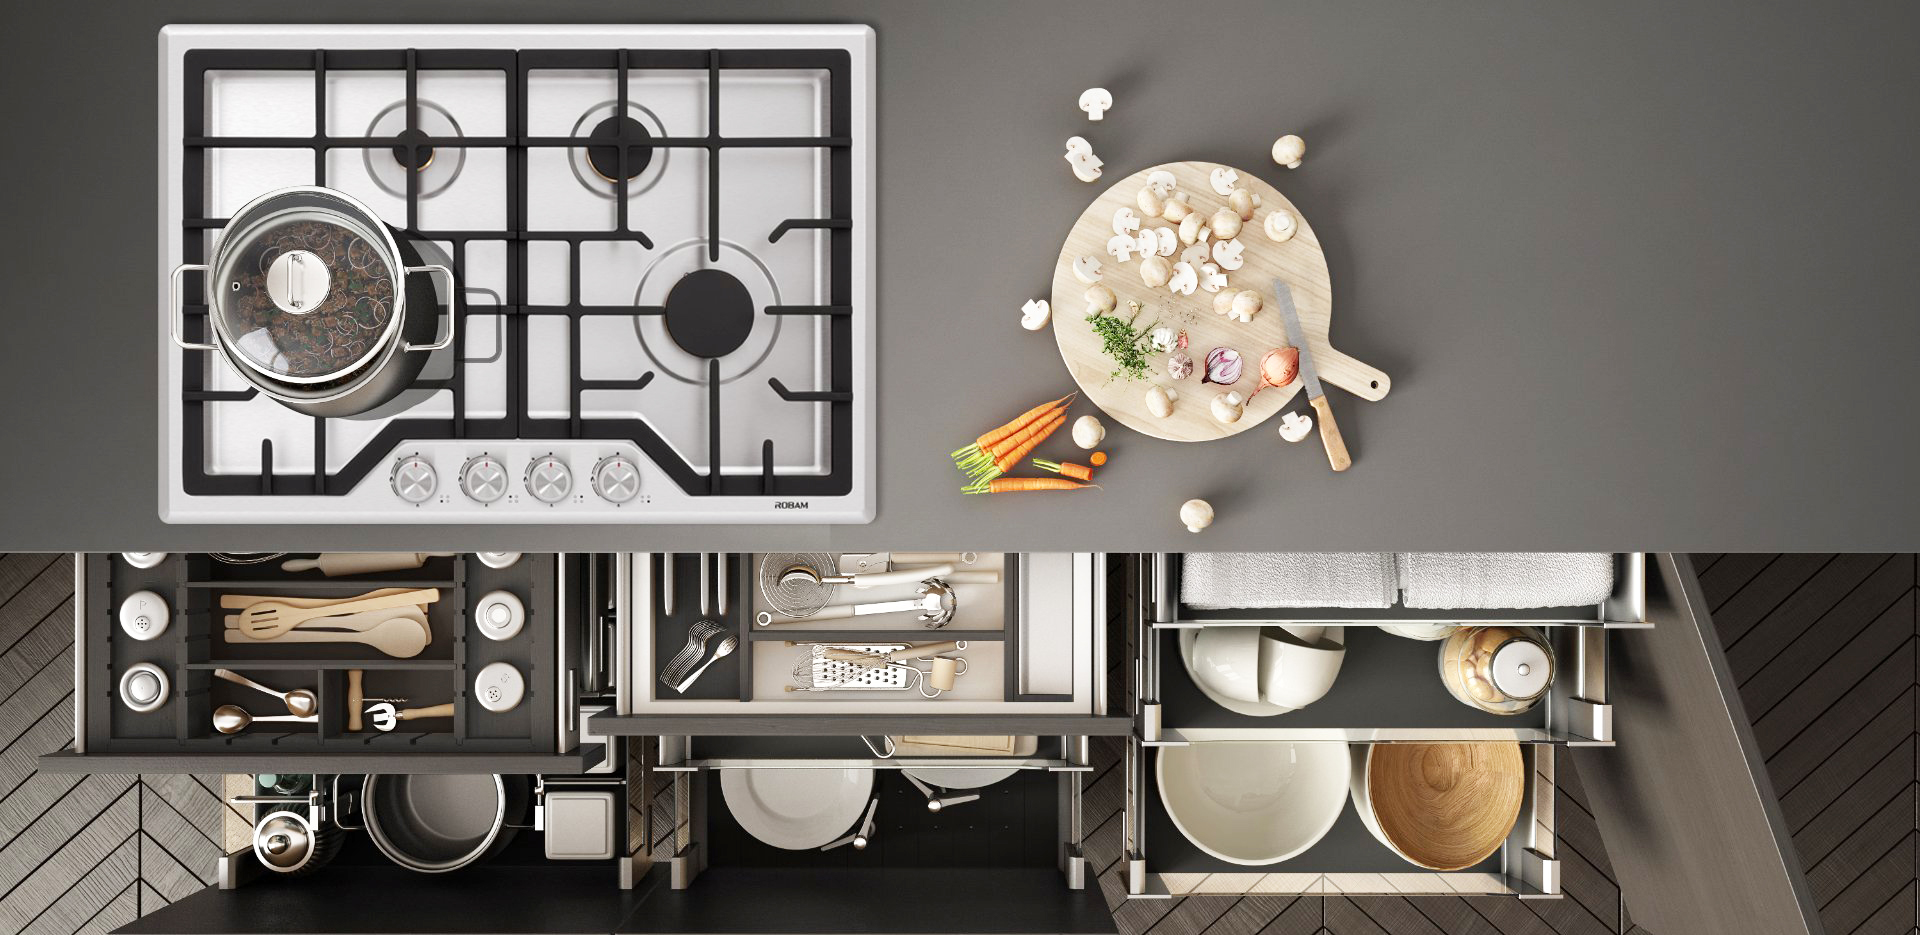 Robam-powerful-30in-gas-cooktop-G413